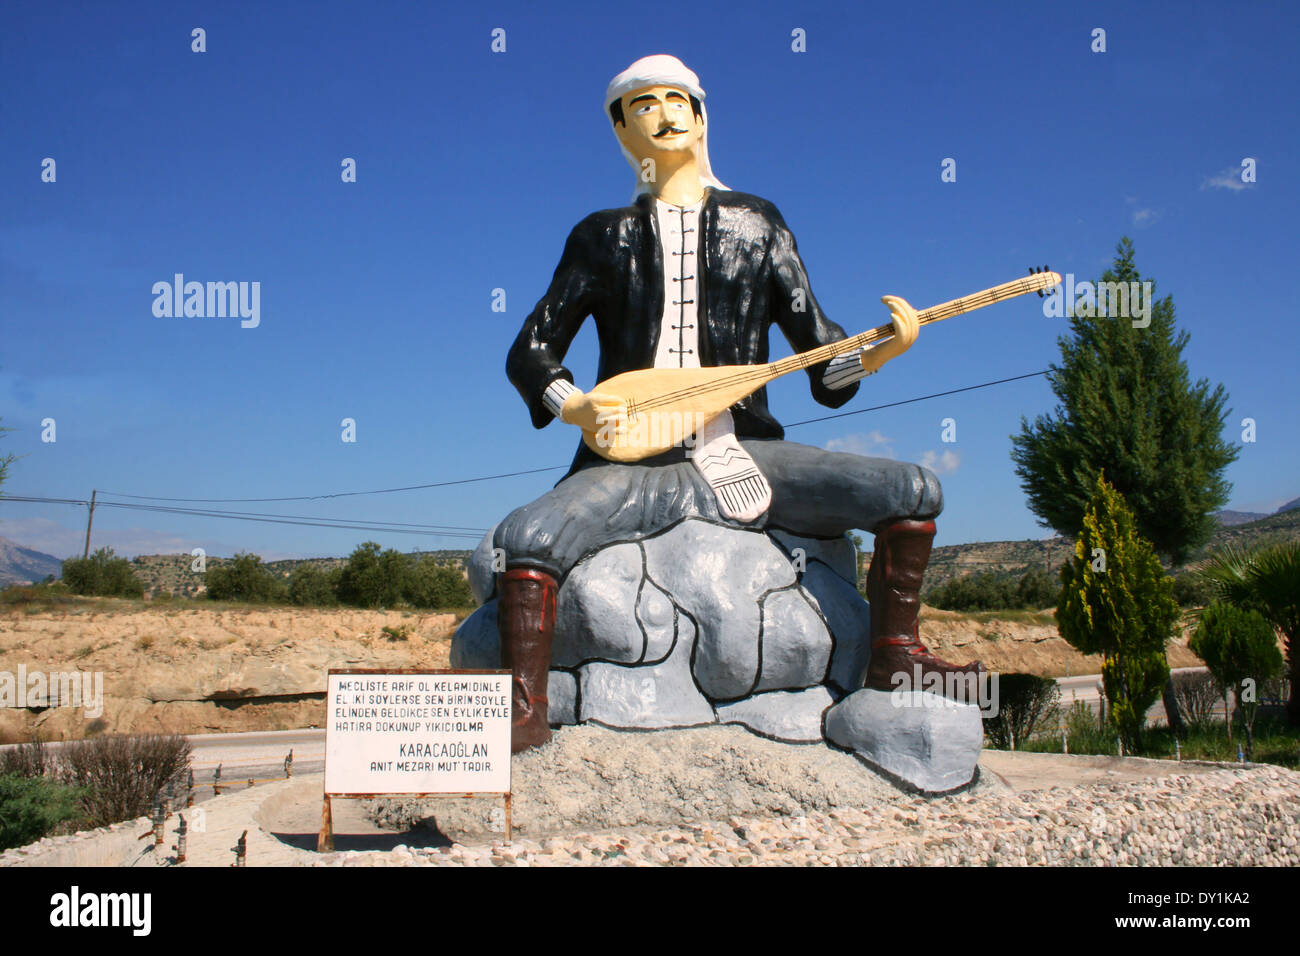 Turkish Poet Karacaoglan Statue in Mut,Mersin,Turkey - Stock Image